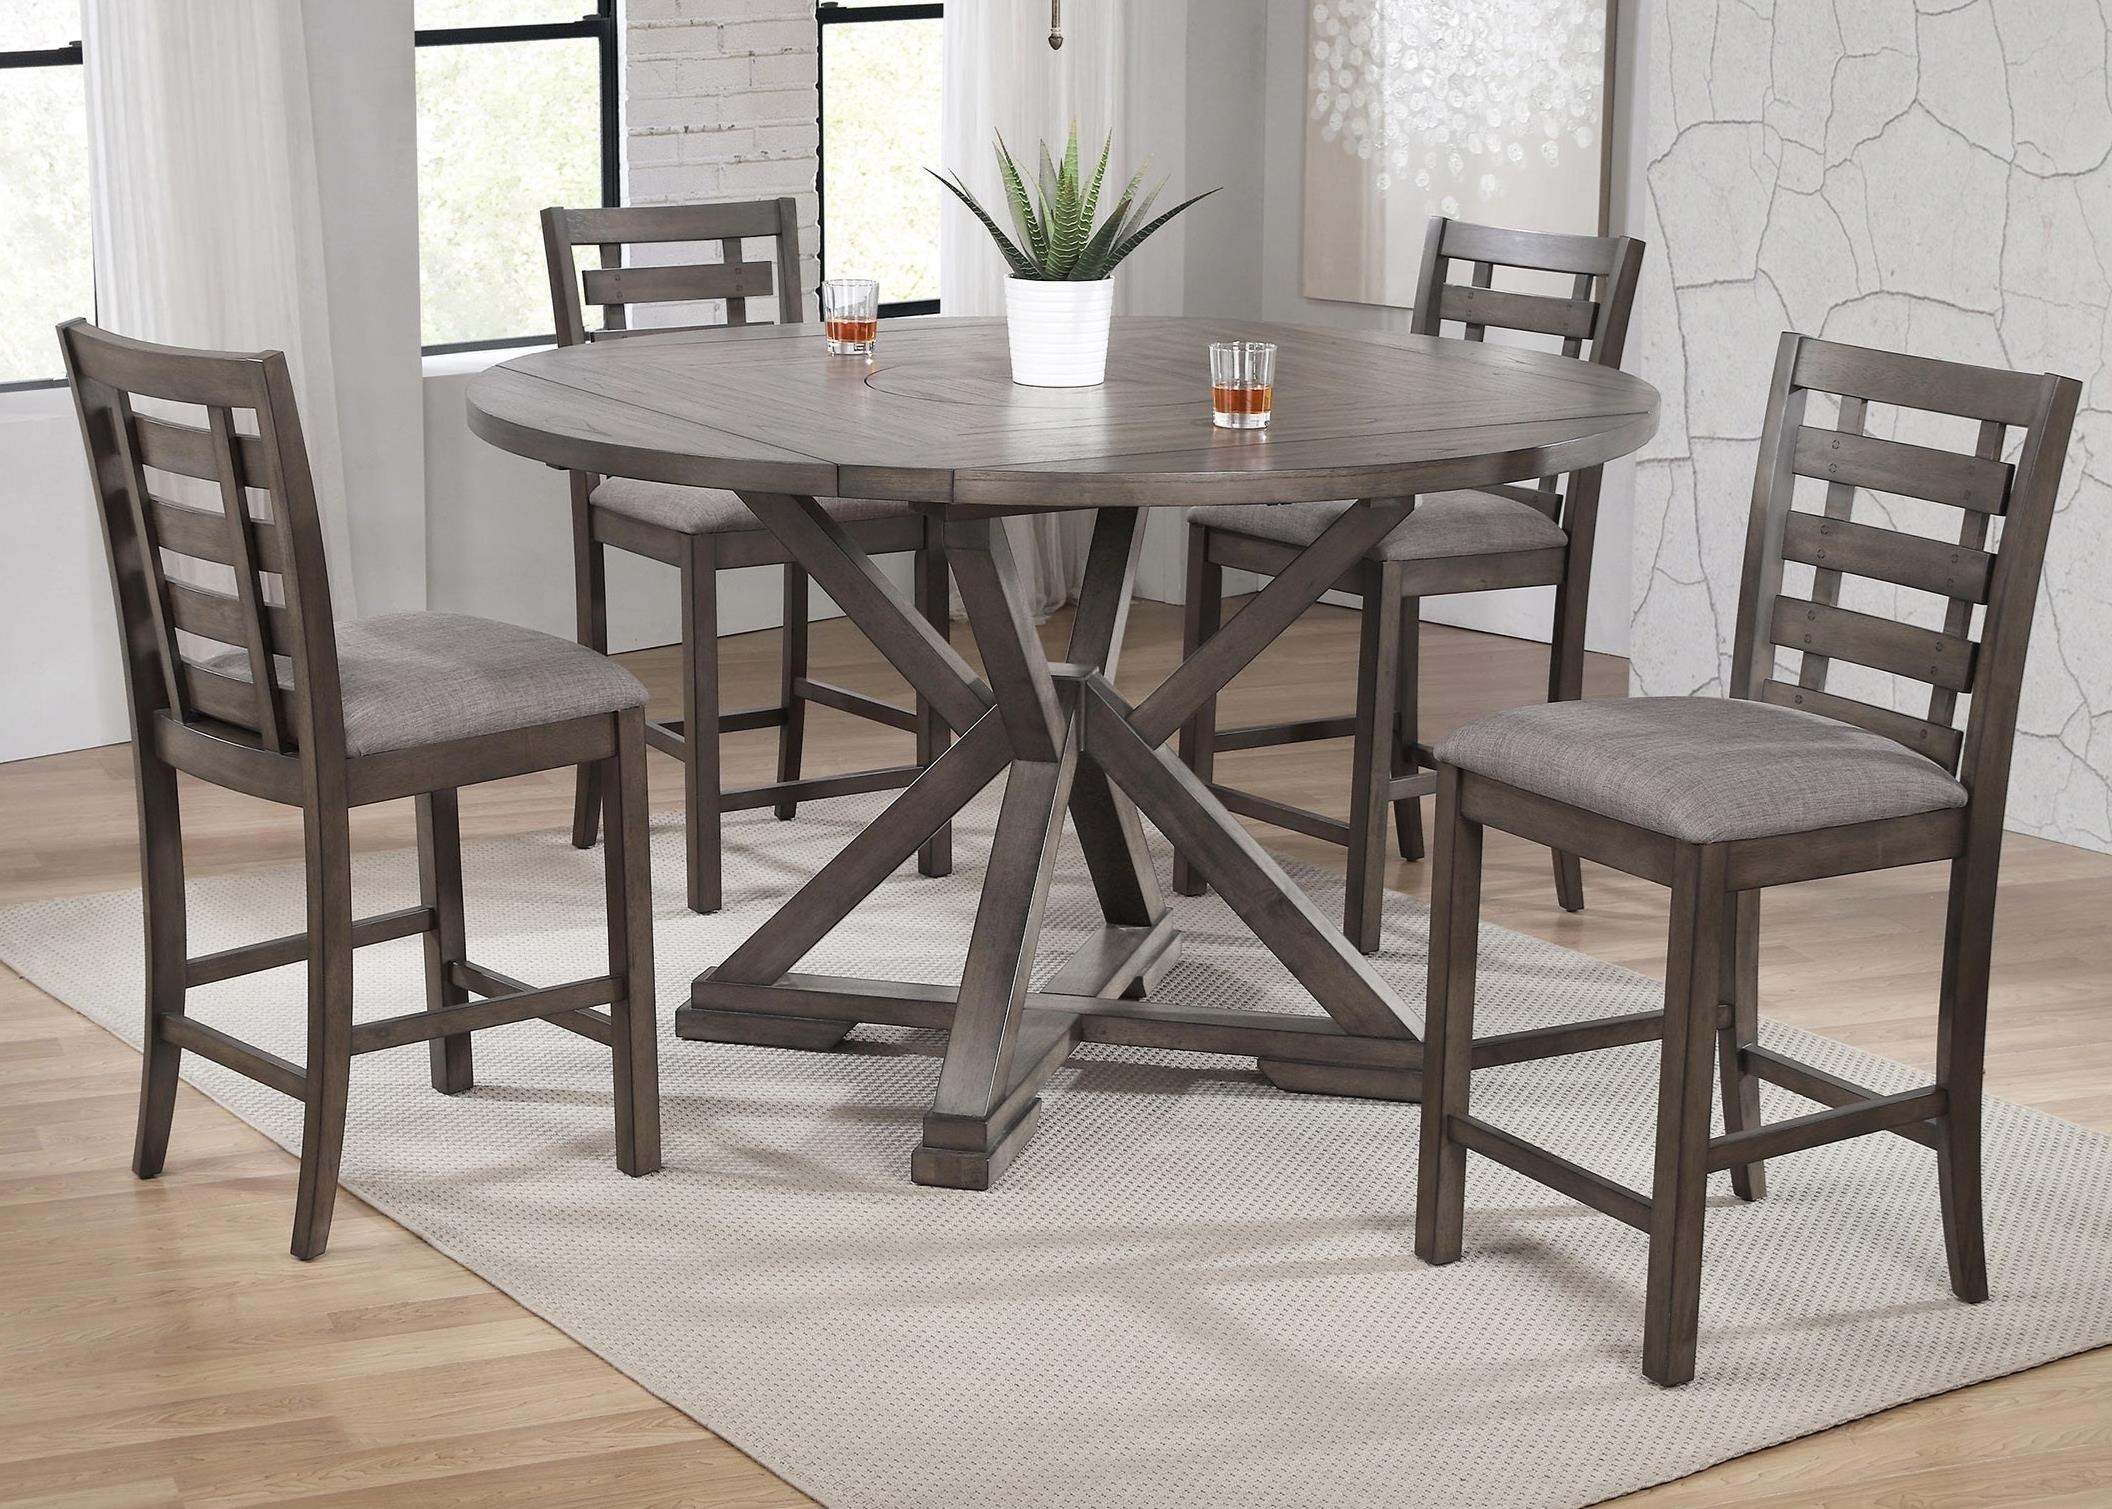 Stratford 5-Piece Counter Height Dining Table Set by Winners Only at Crowley Furniture & Mattress